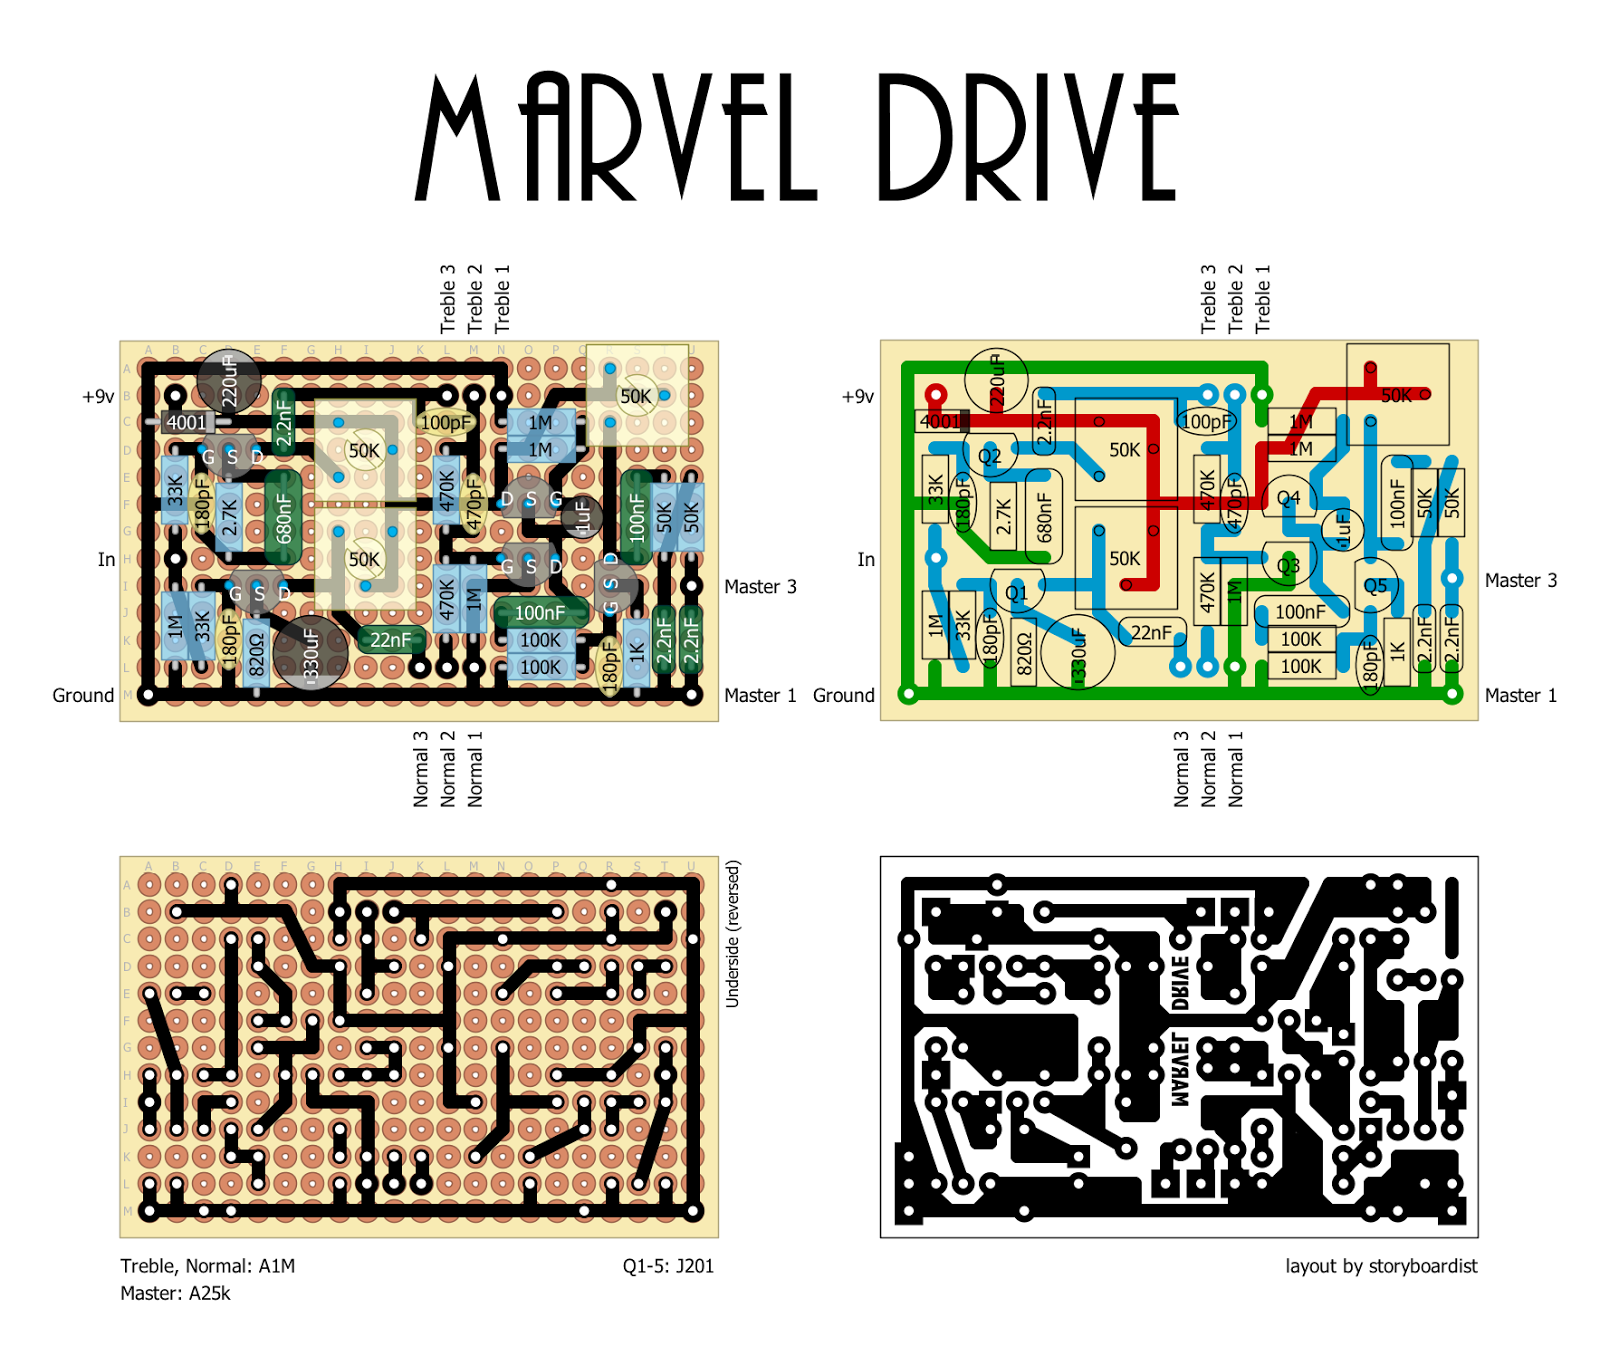 perf and pcb effects layouts 2014 the marvel drive has parallel input stages allowing you to create your own blend between the normal channel and the treble channel